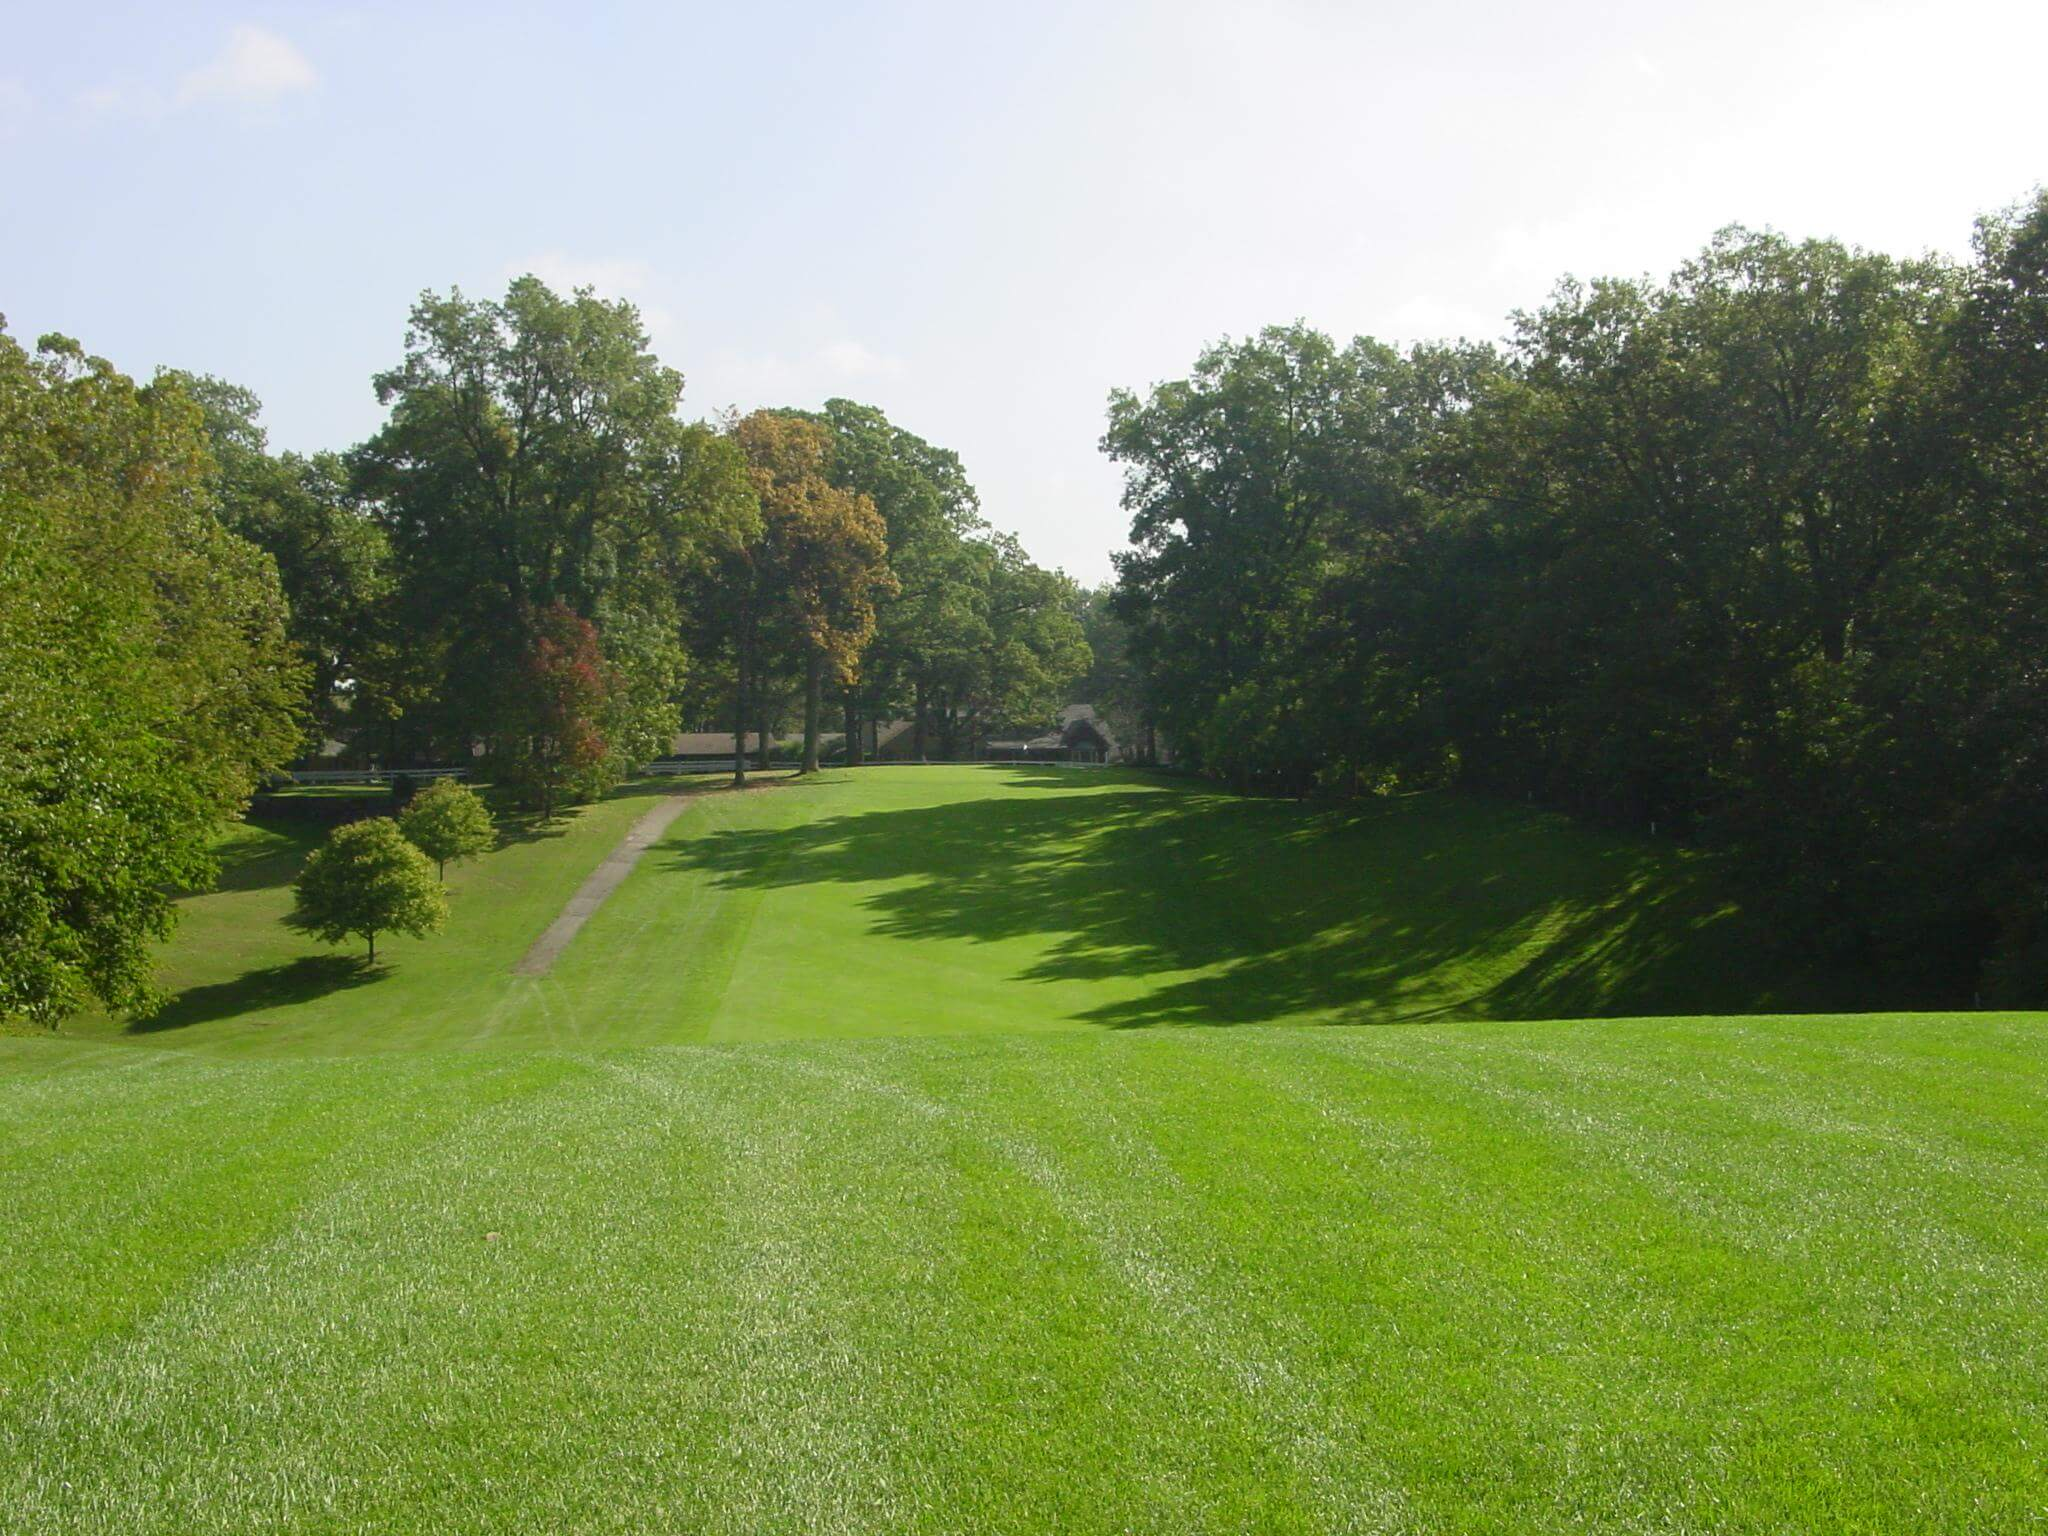 Hole 6 on the golf course